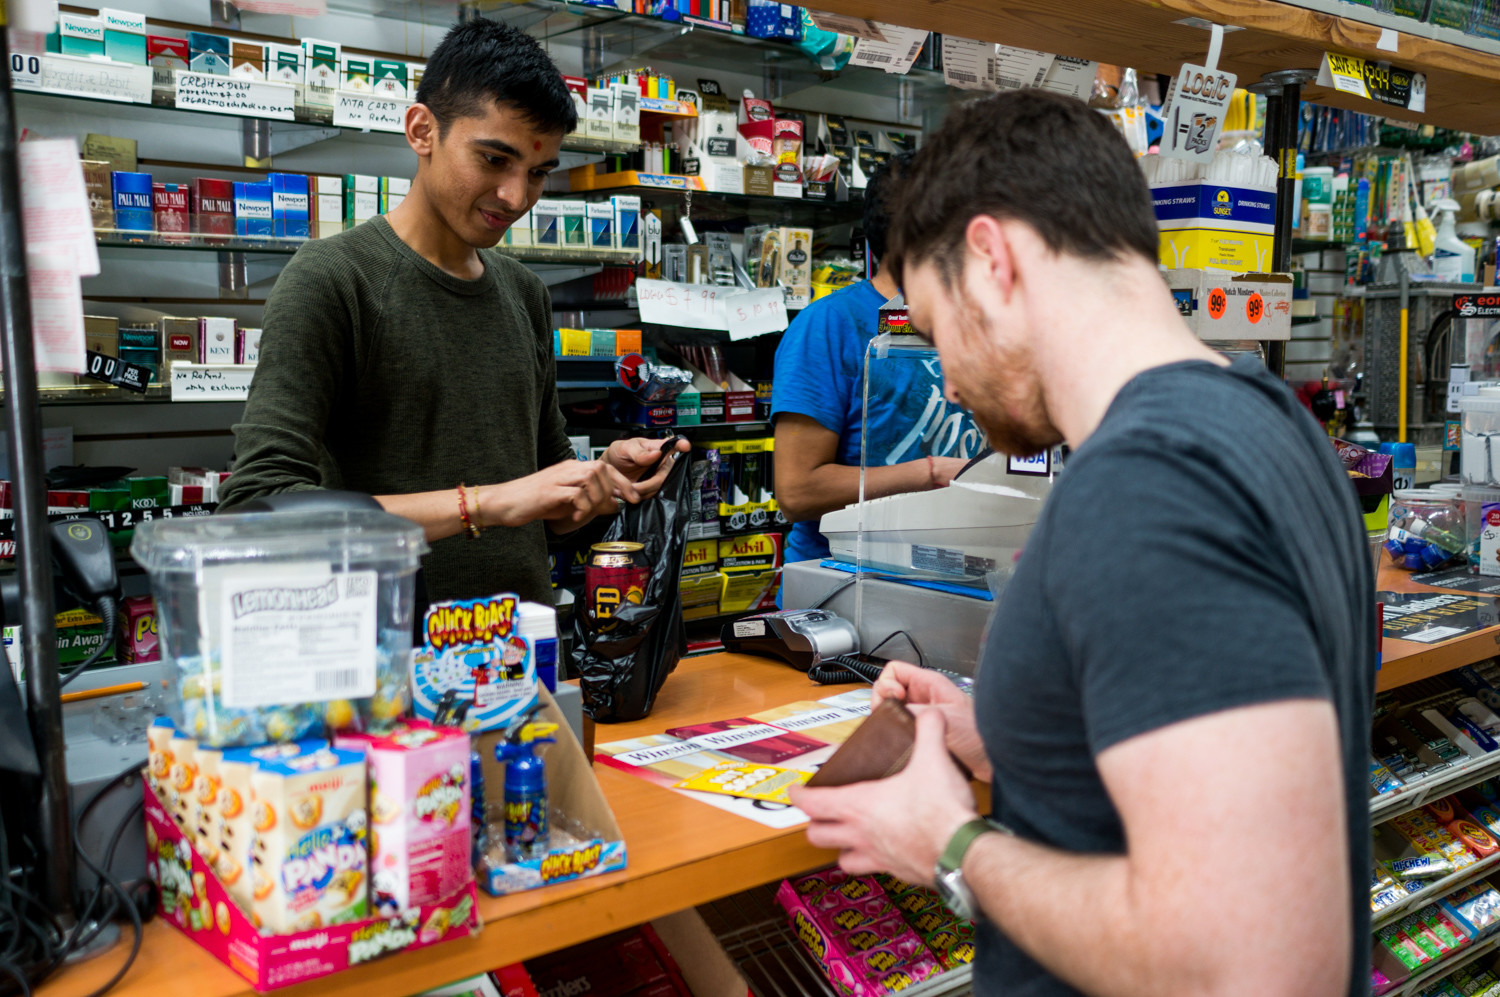 A customer purchases a lotto ticket at GNUP Sunil Corp., that has seen more than $1 million in winnings for players, but nothing for the store.